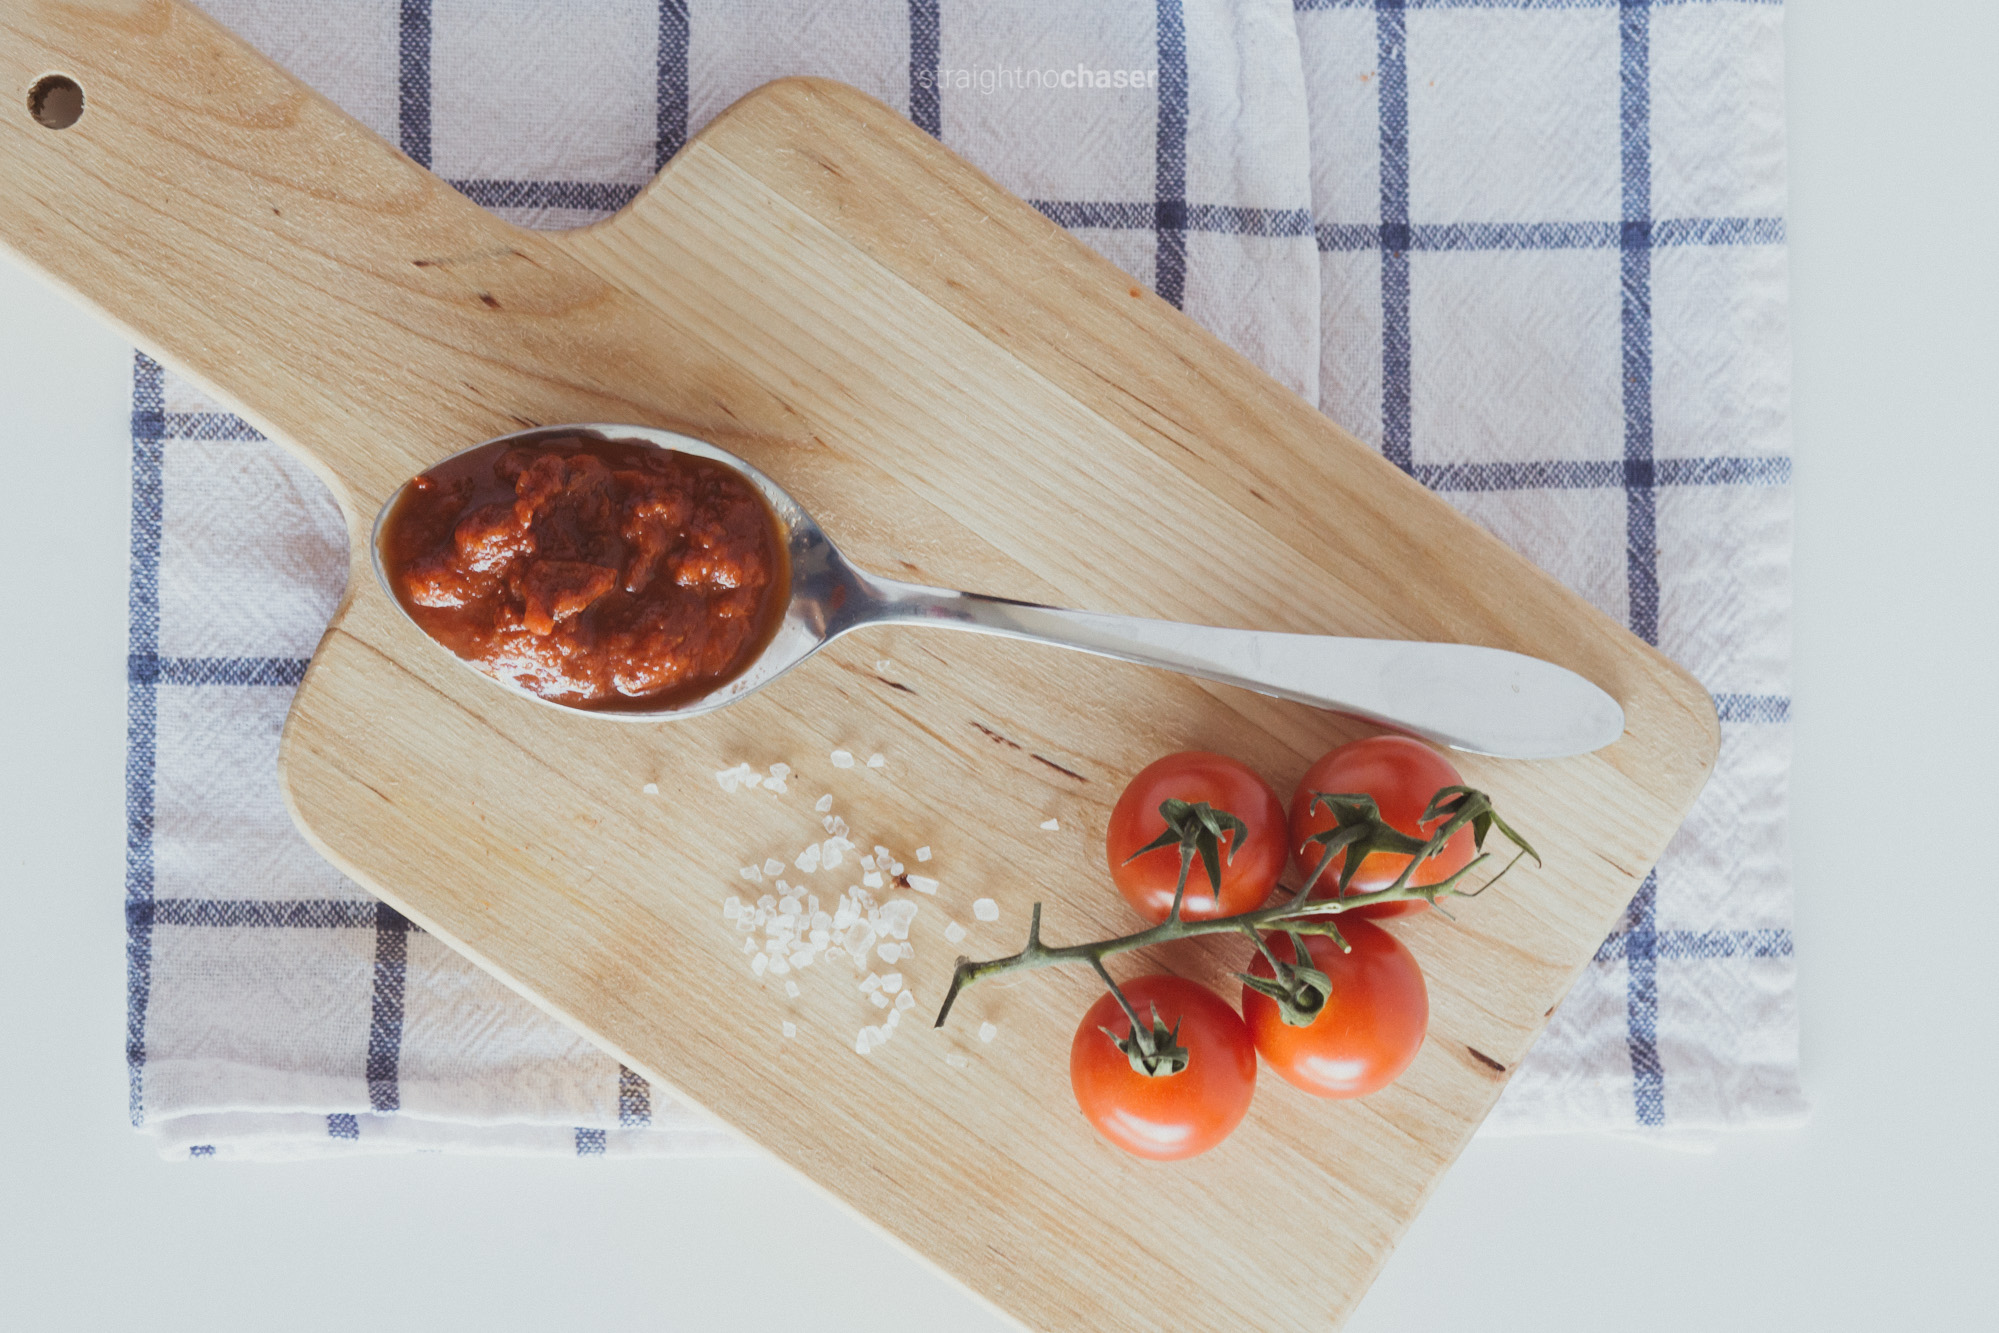 Fresh preservative- free tomato sauces from Pasta People